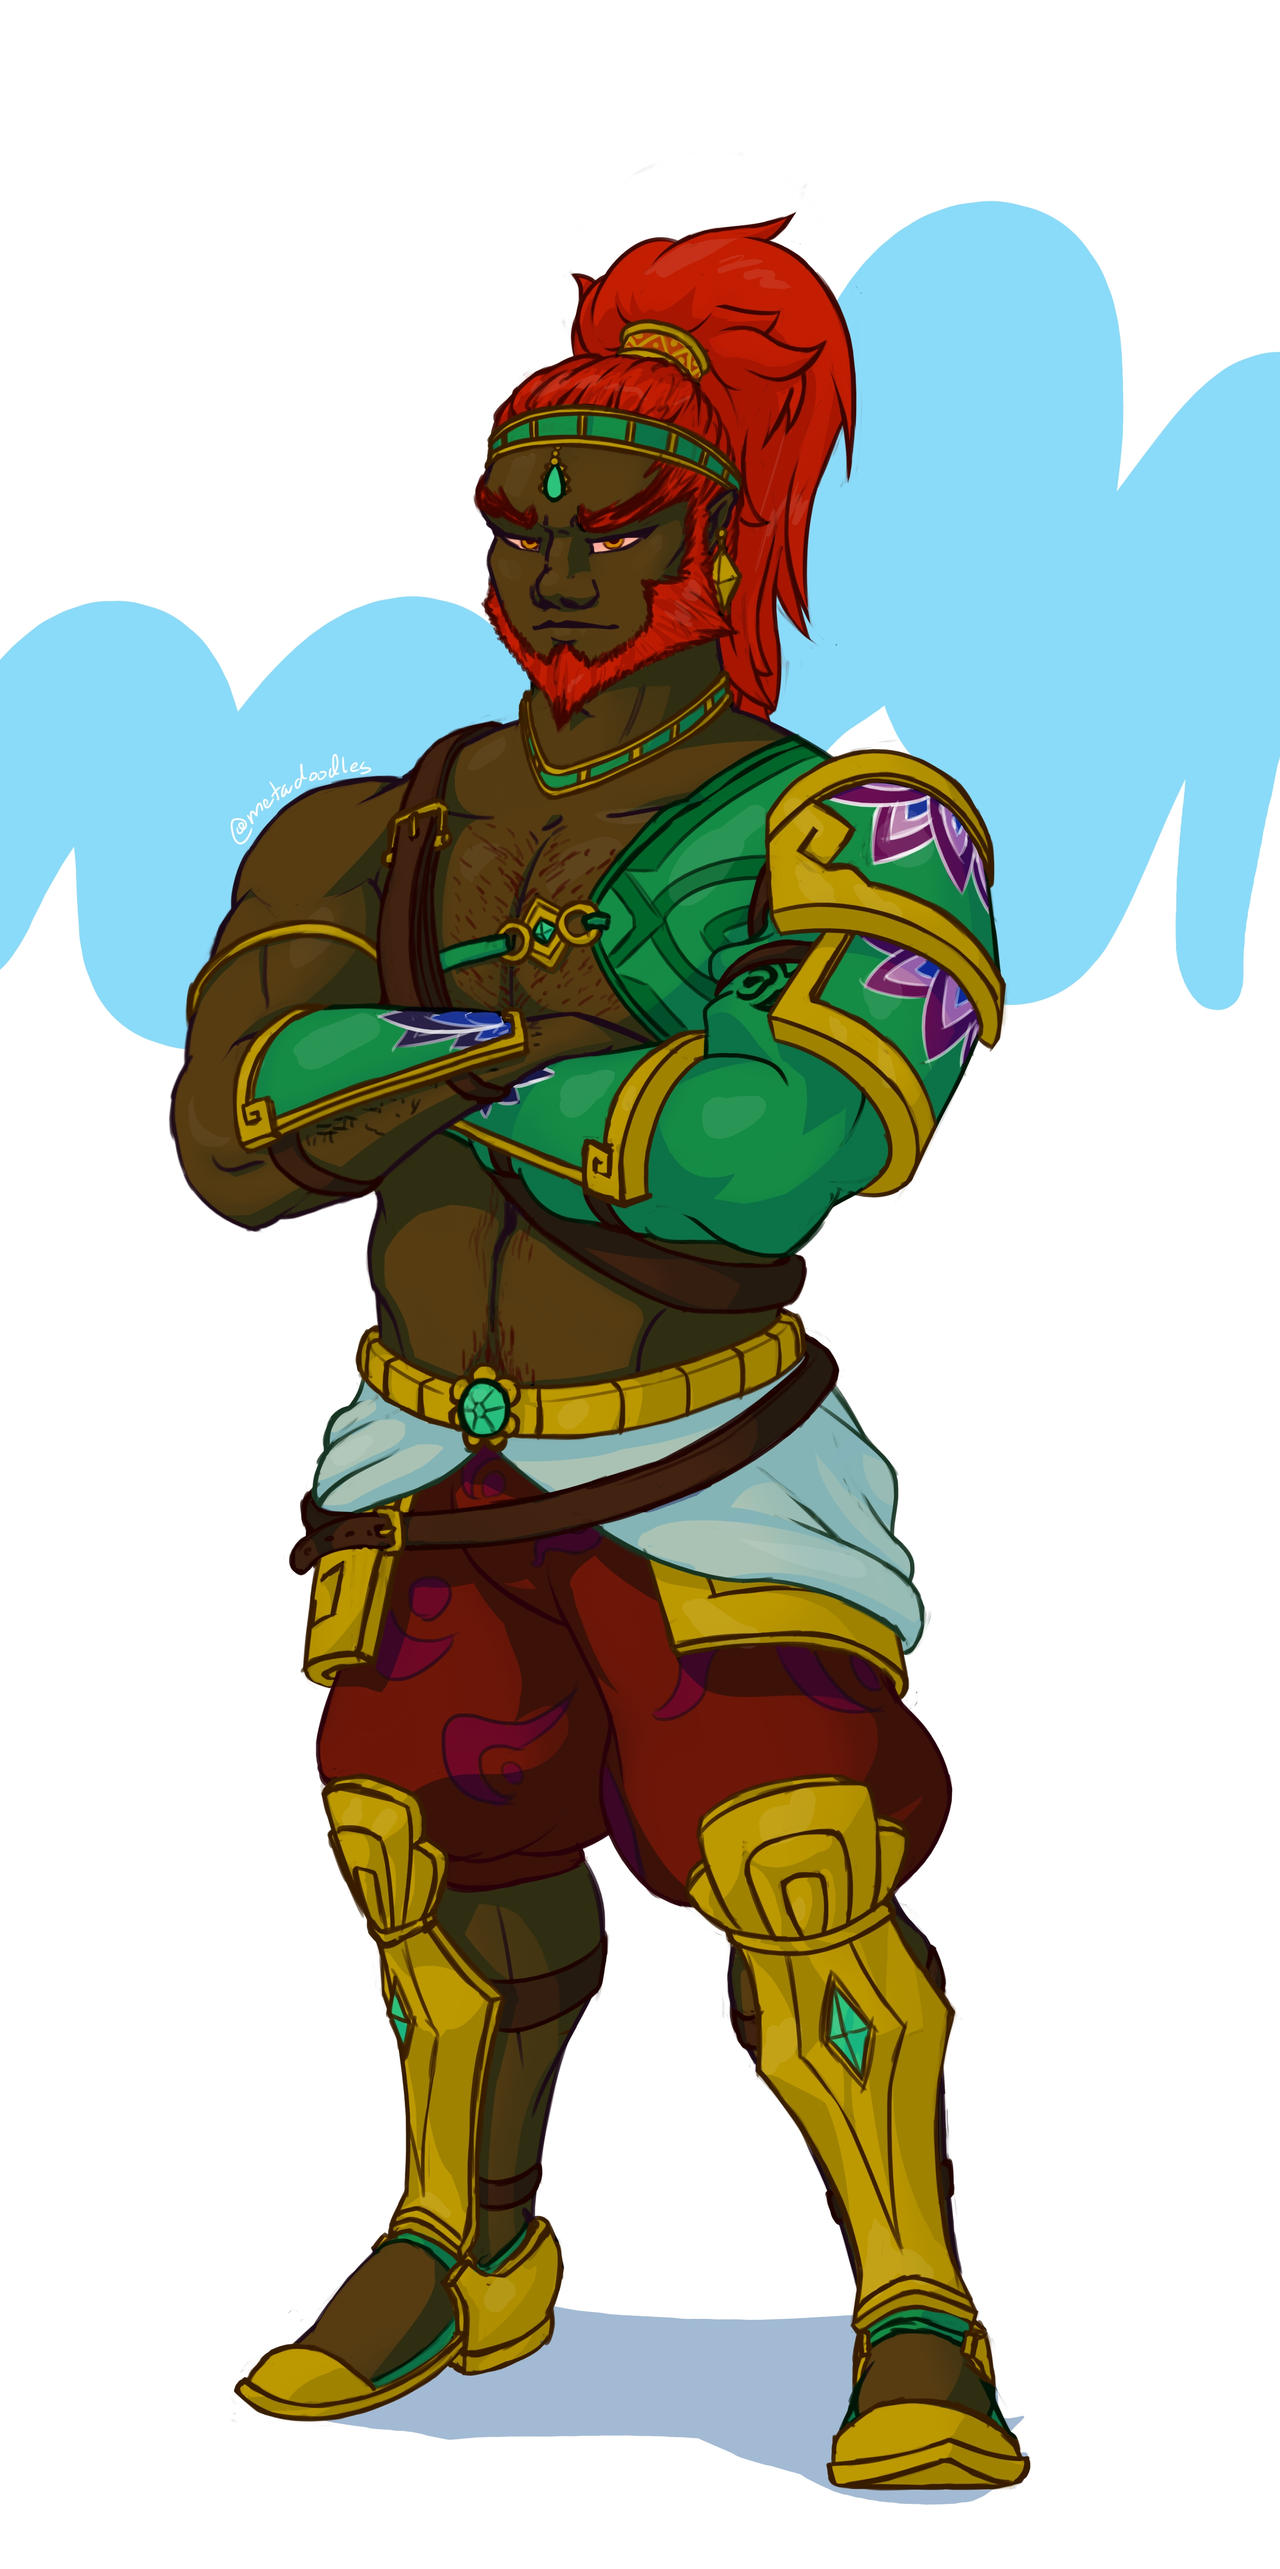 Botw Ganondorf By Vollgart On Deviantart